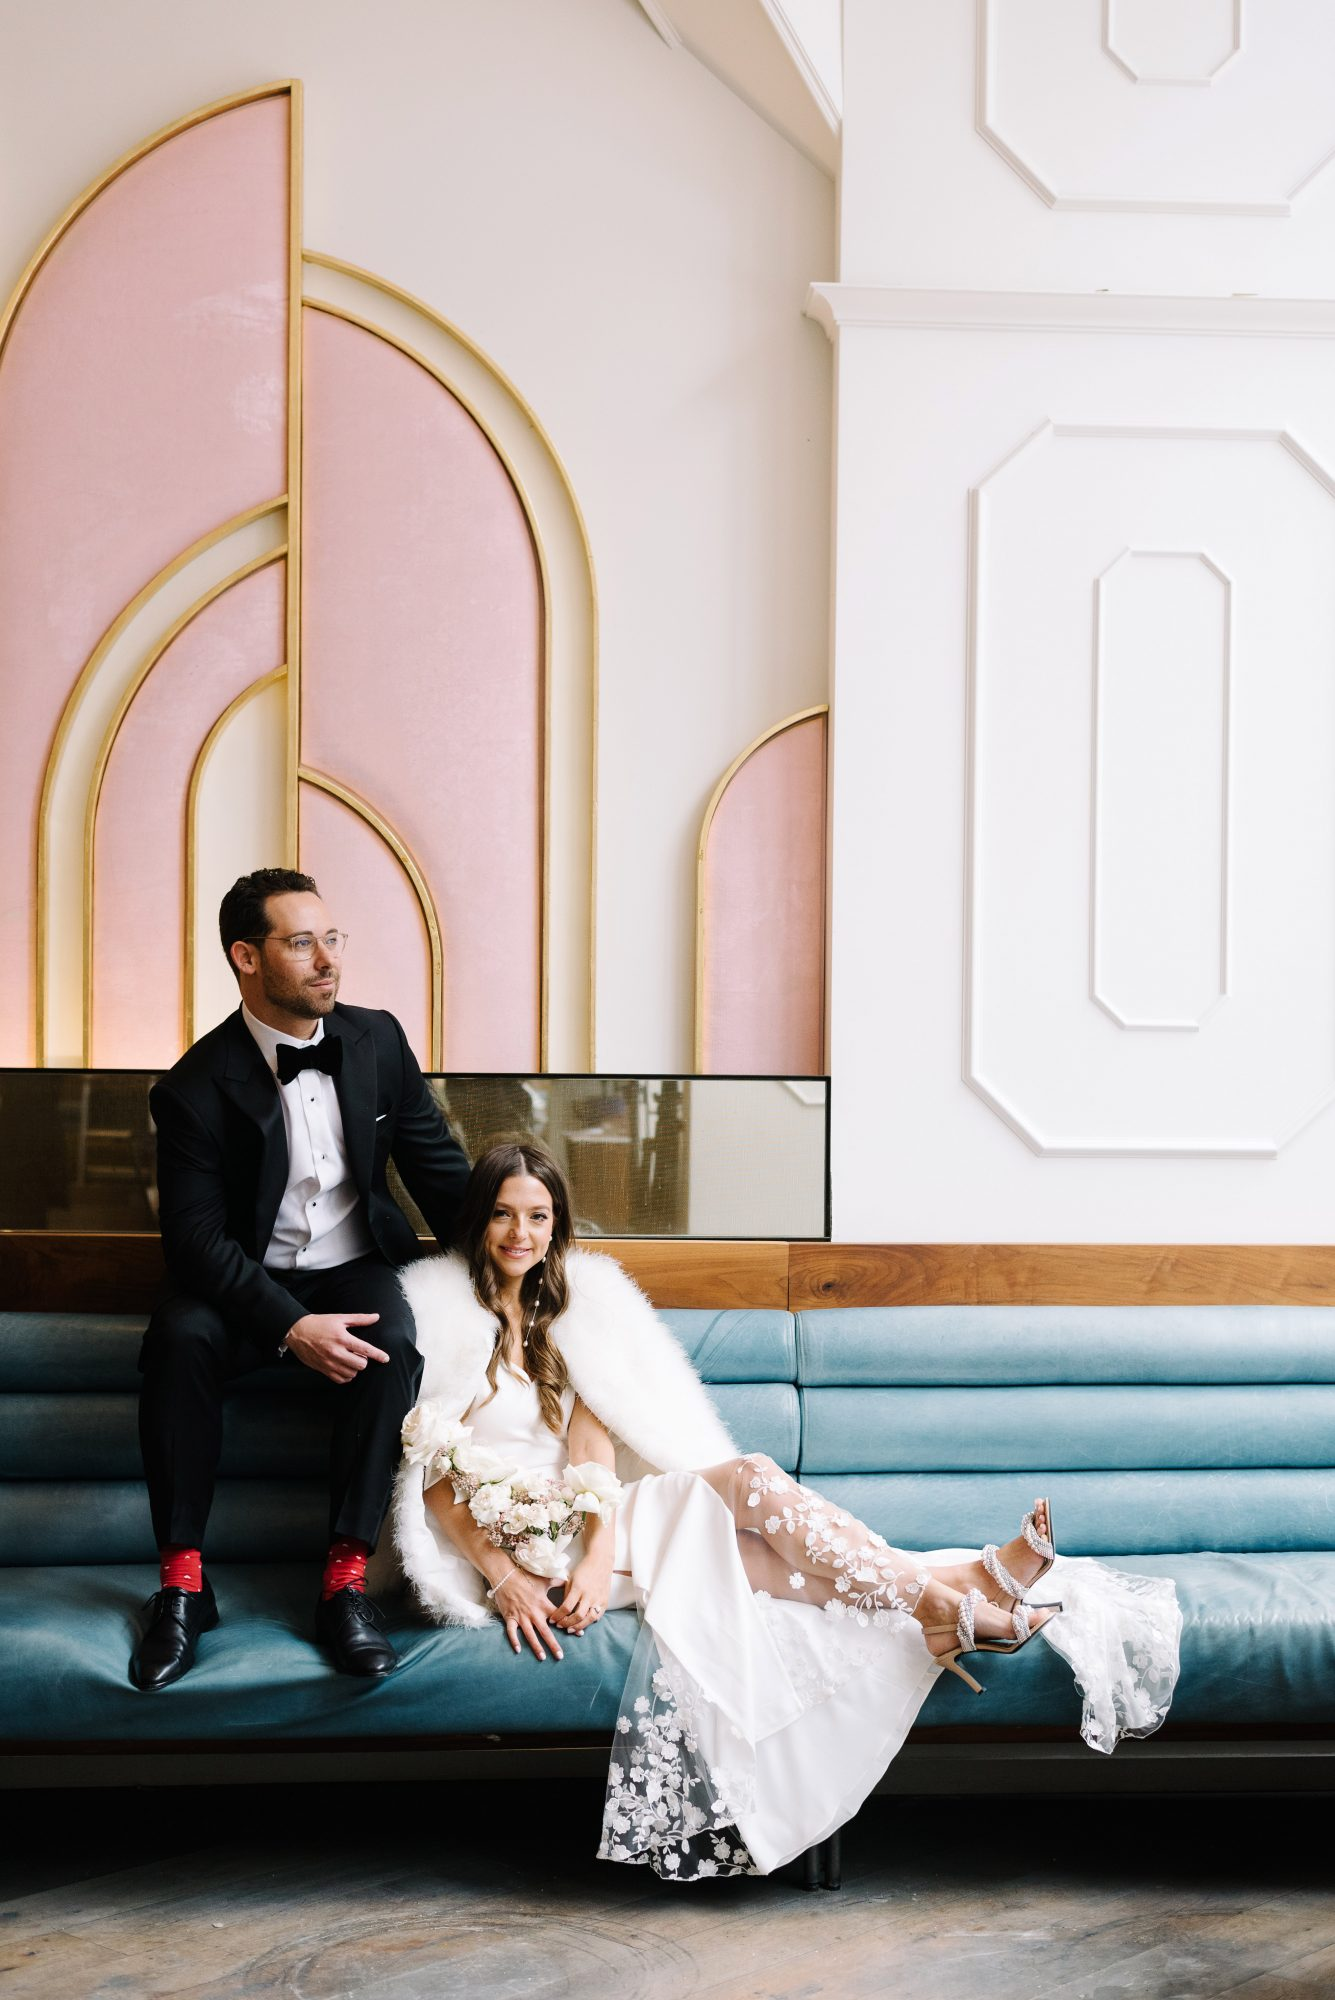 krista will wedding couple posing on built in sofa art deco design